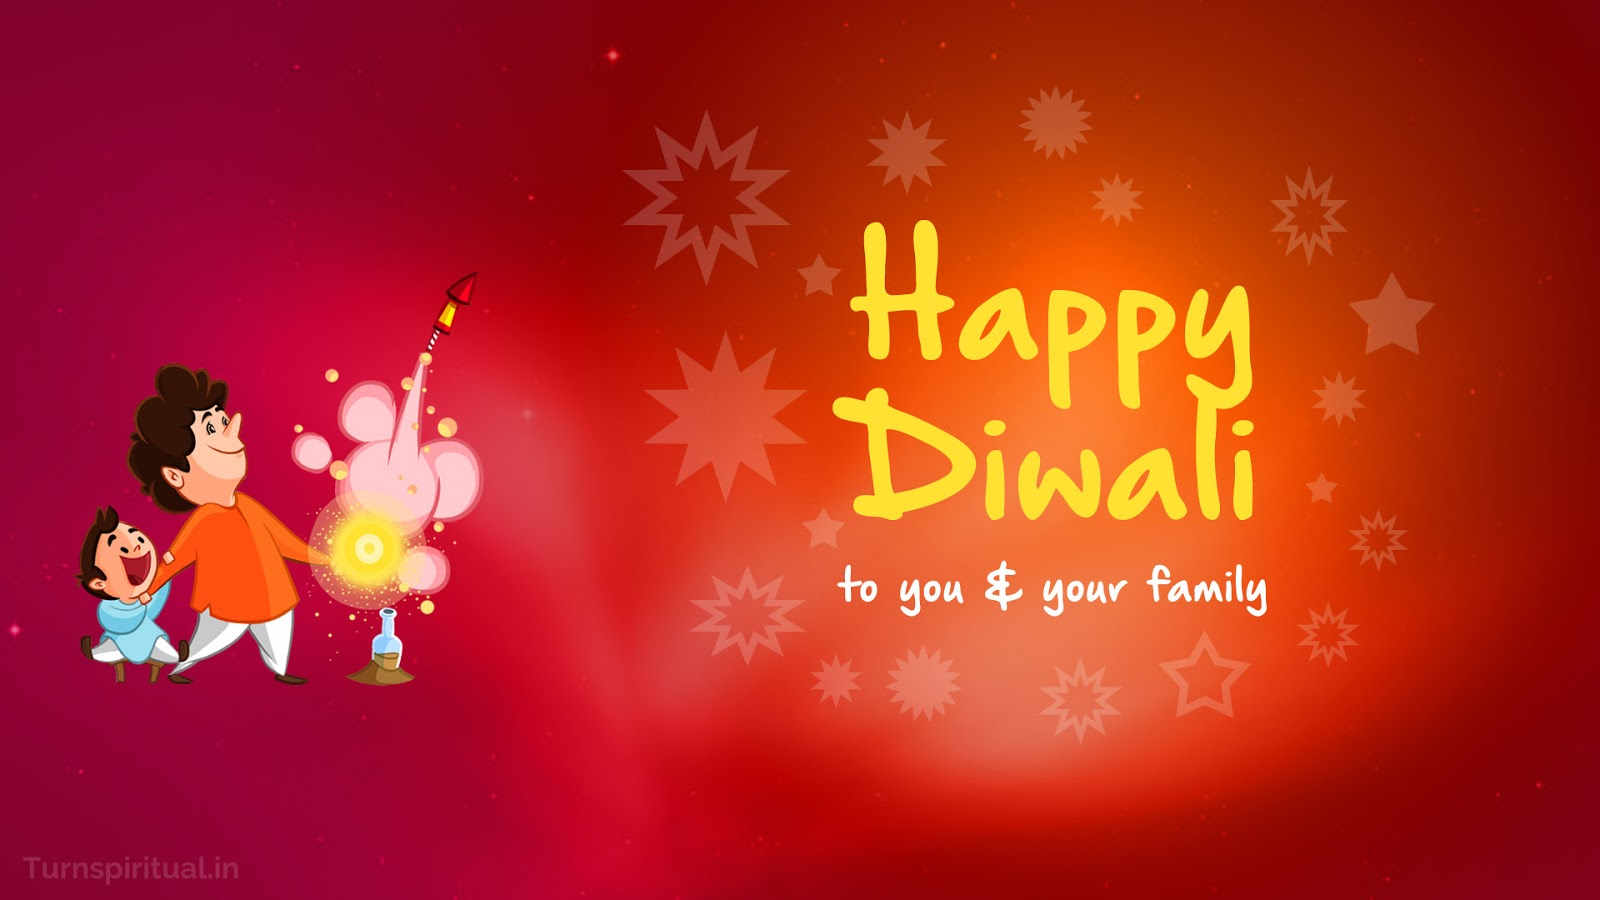 Happy Diwali To You And Your Family Illustration